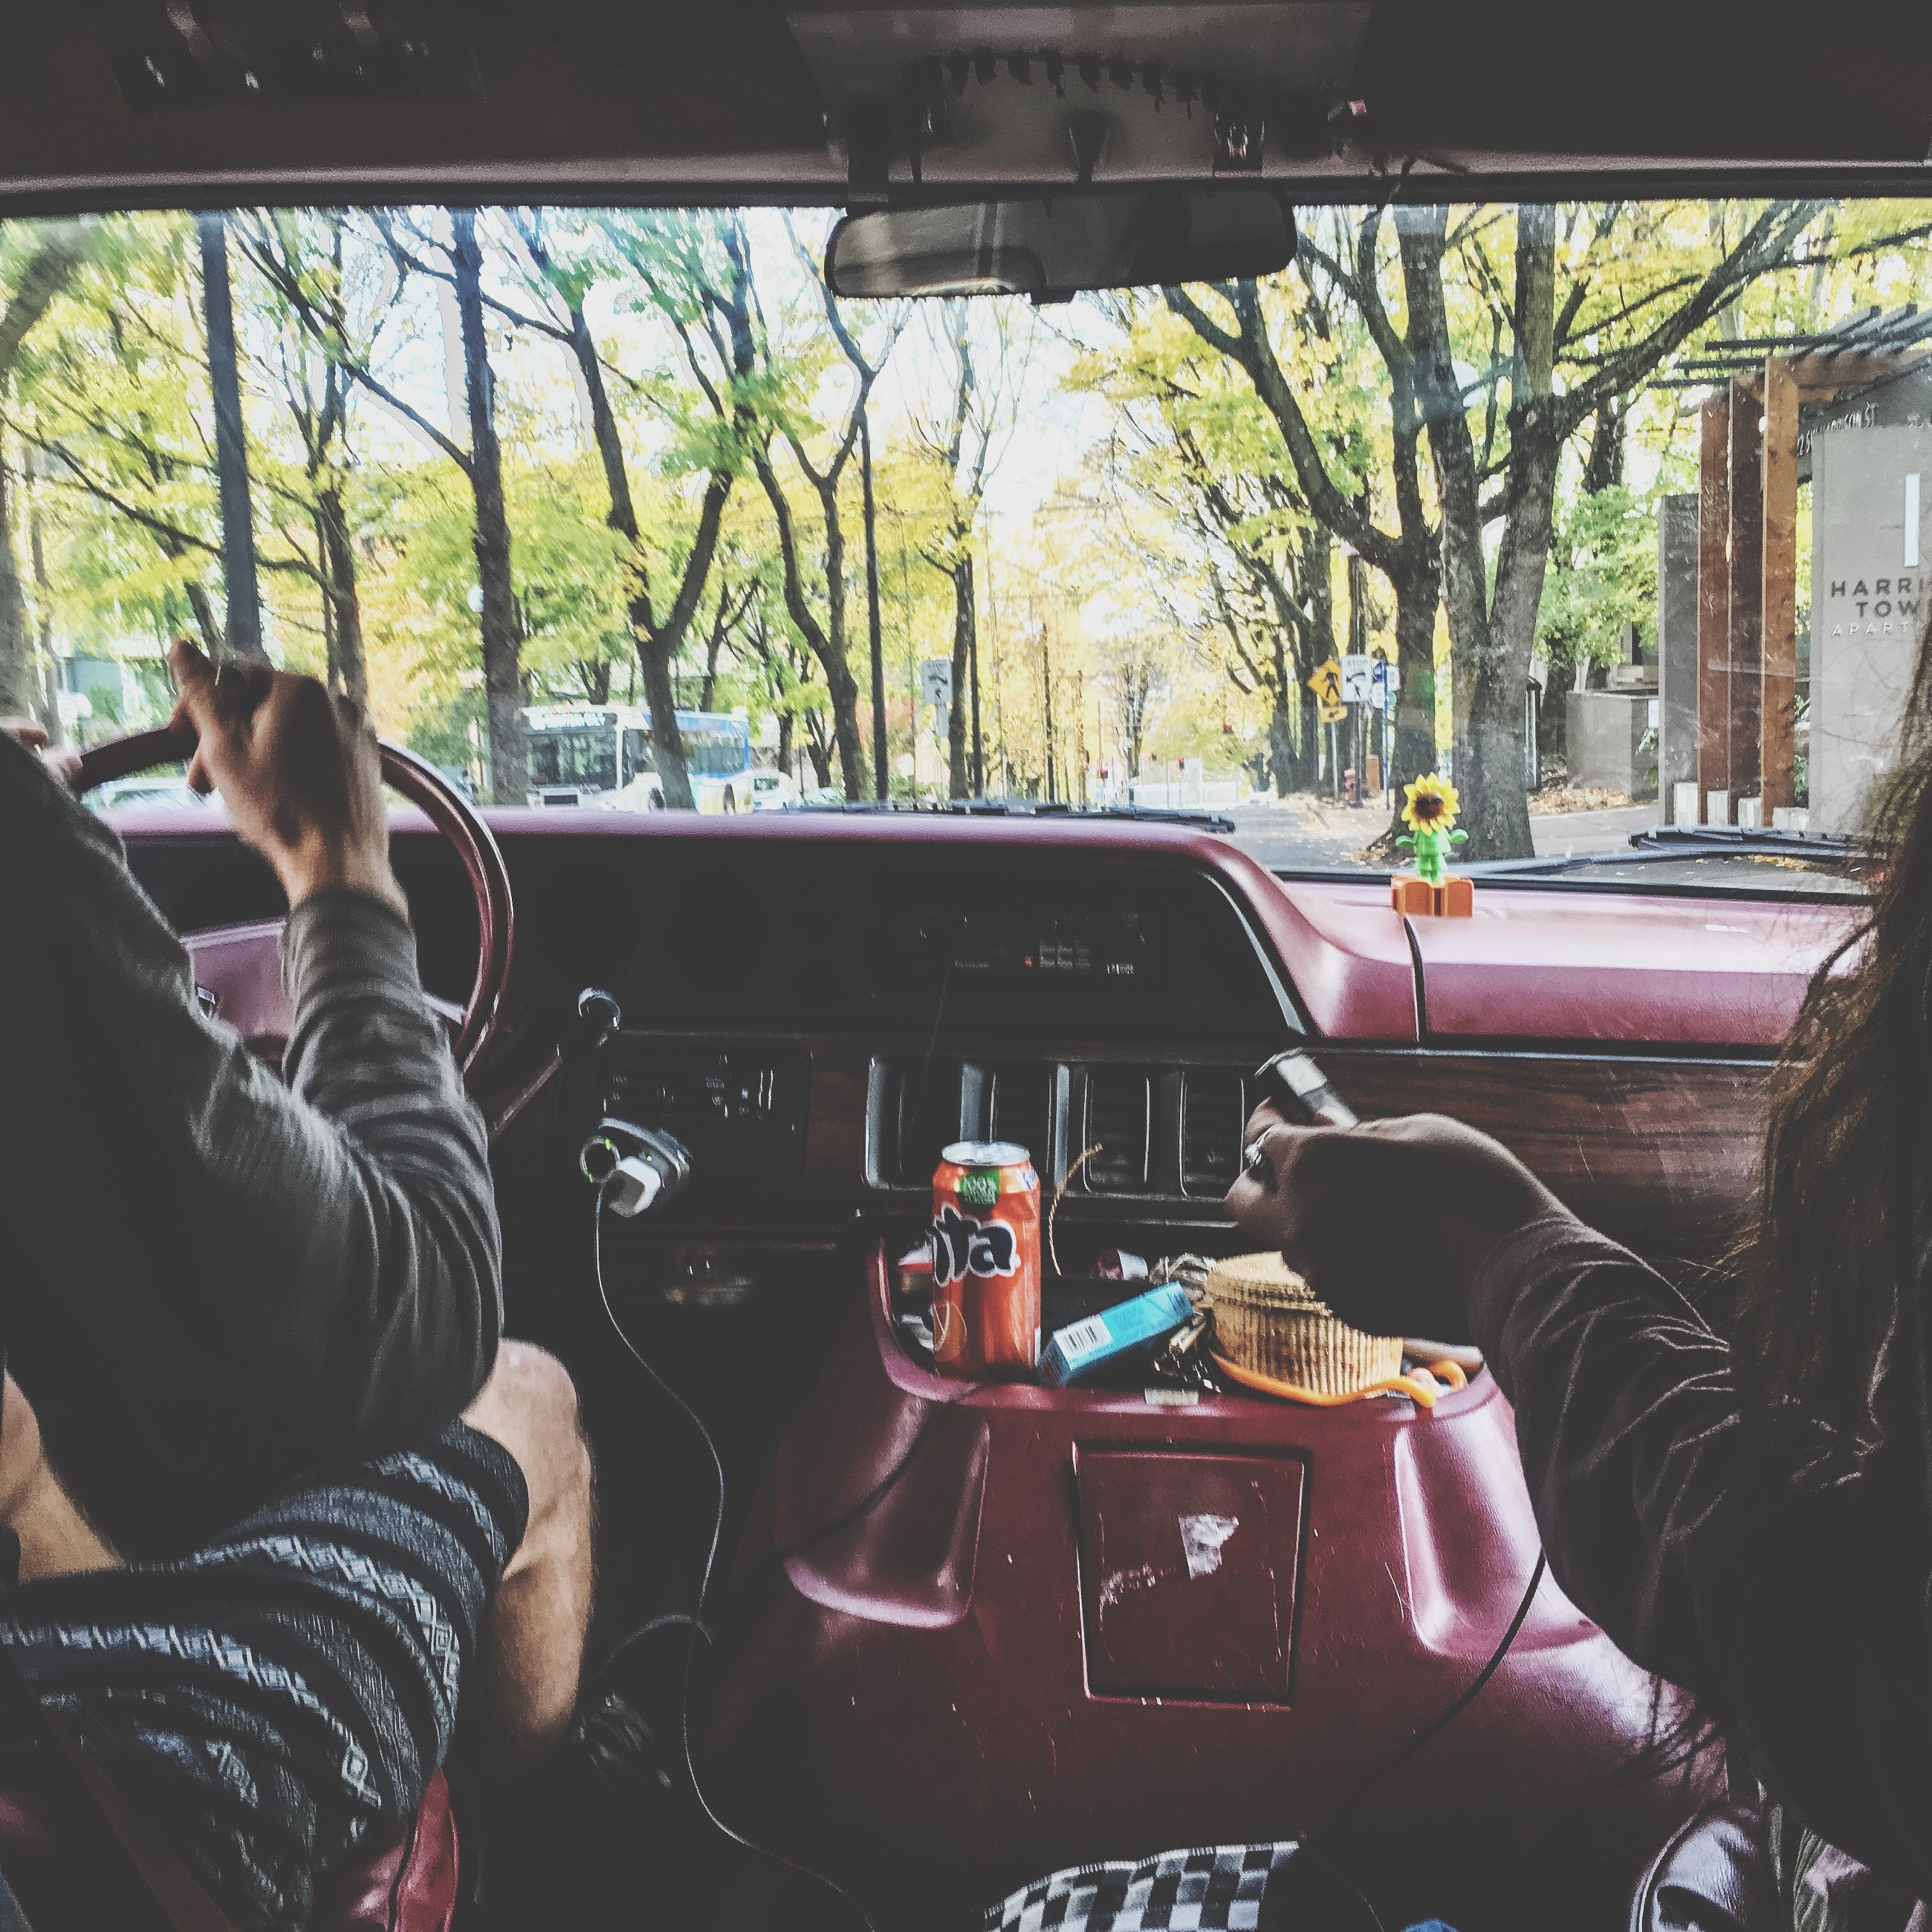 transportation, mode of transport, land vehicle, lifestyles, car, leisure activity, men, vehicle interior, travel, sitting, tree, holding, part of, car interior, driving, person